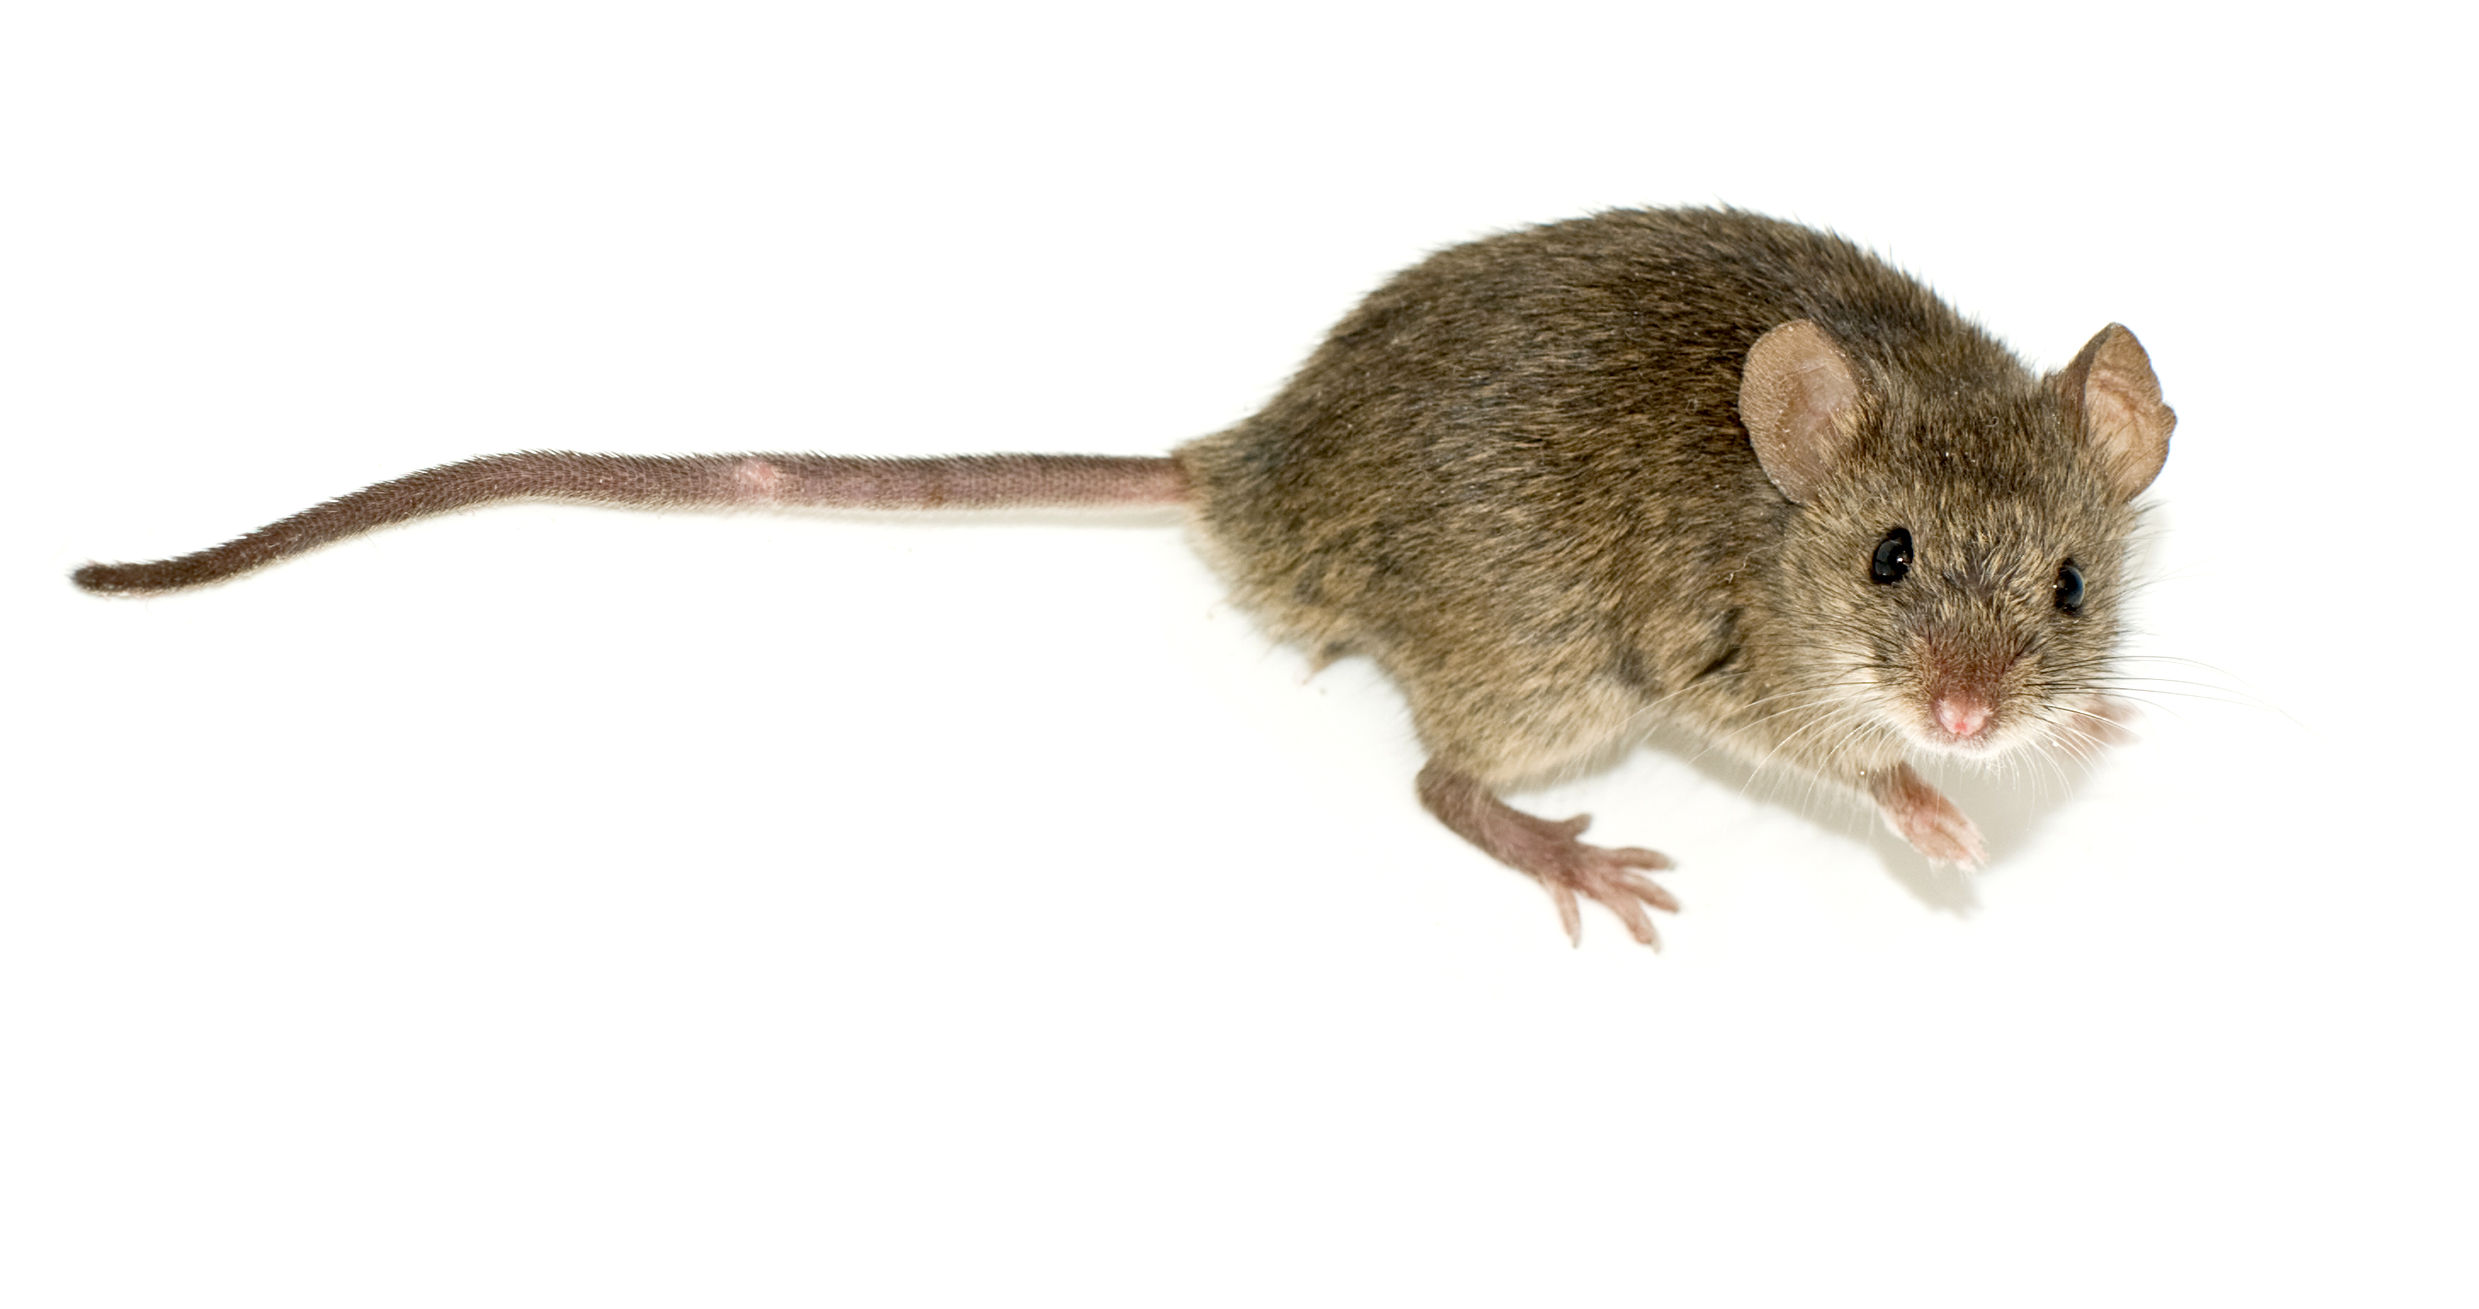 toyota s soy based electric wiring attracts rodents and also a lawsuit 113921_1 toyota's soy based electric wiring attracts rodents, and also a